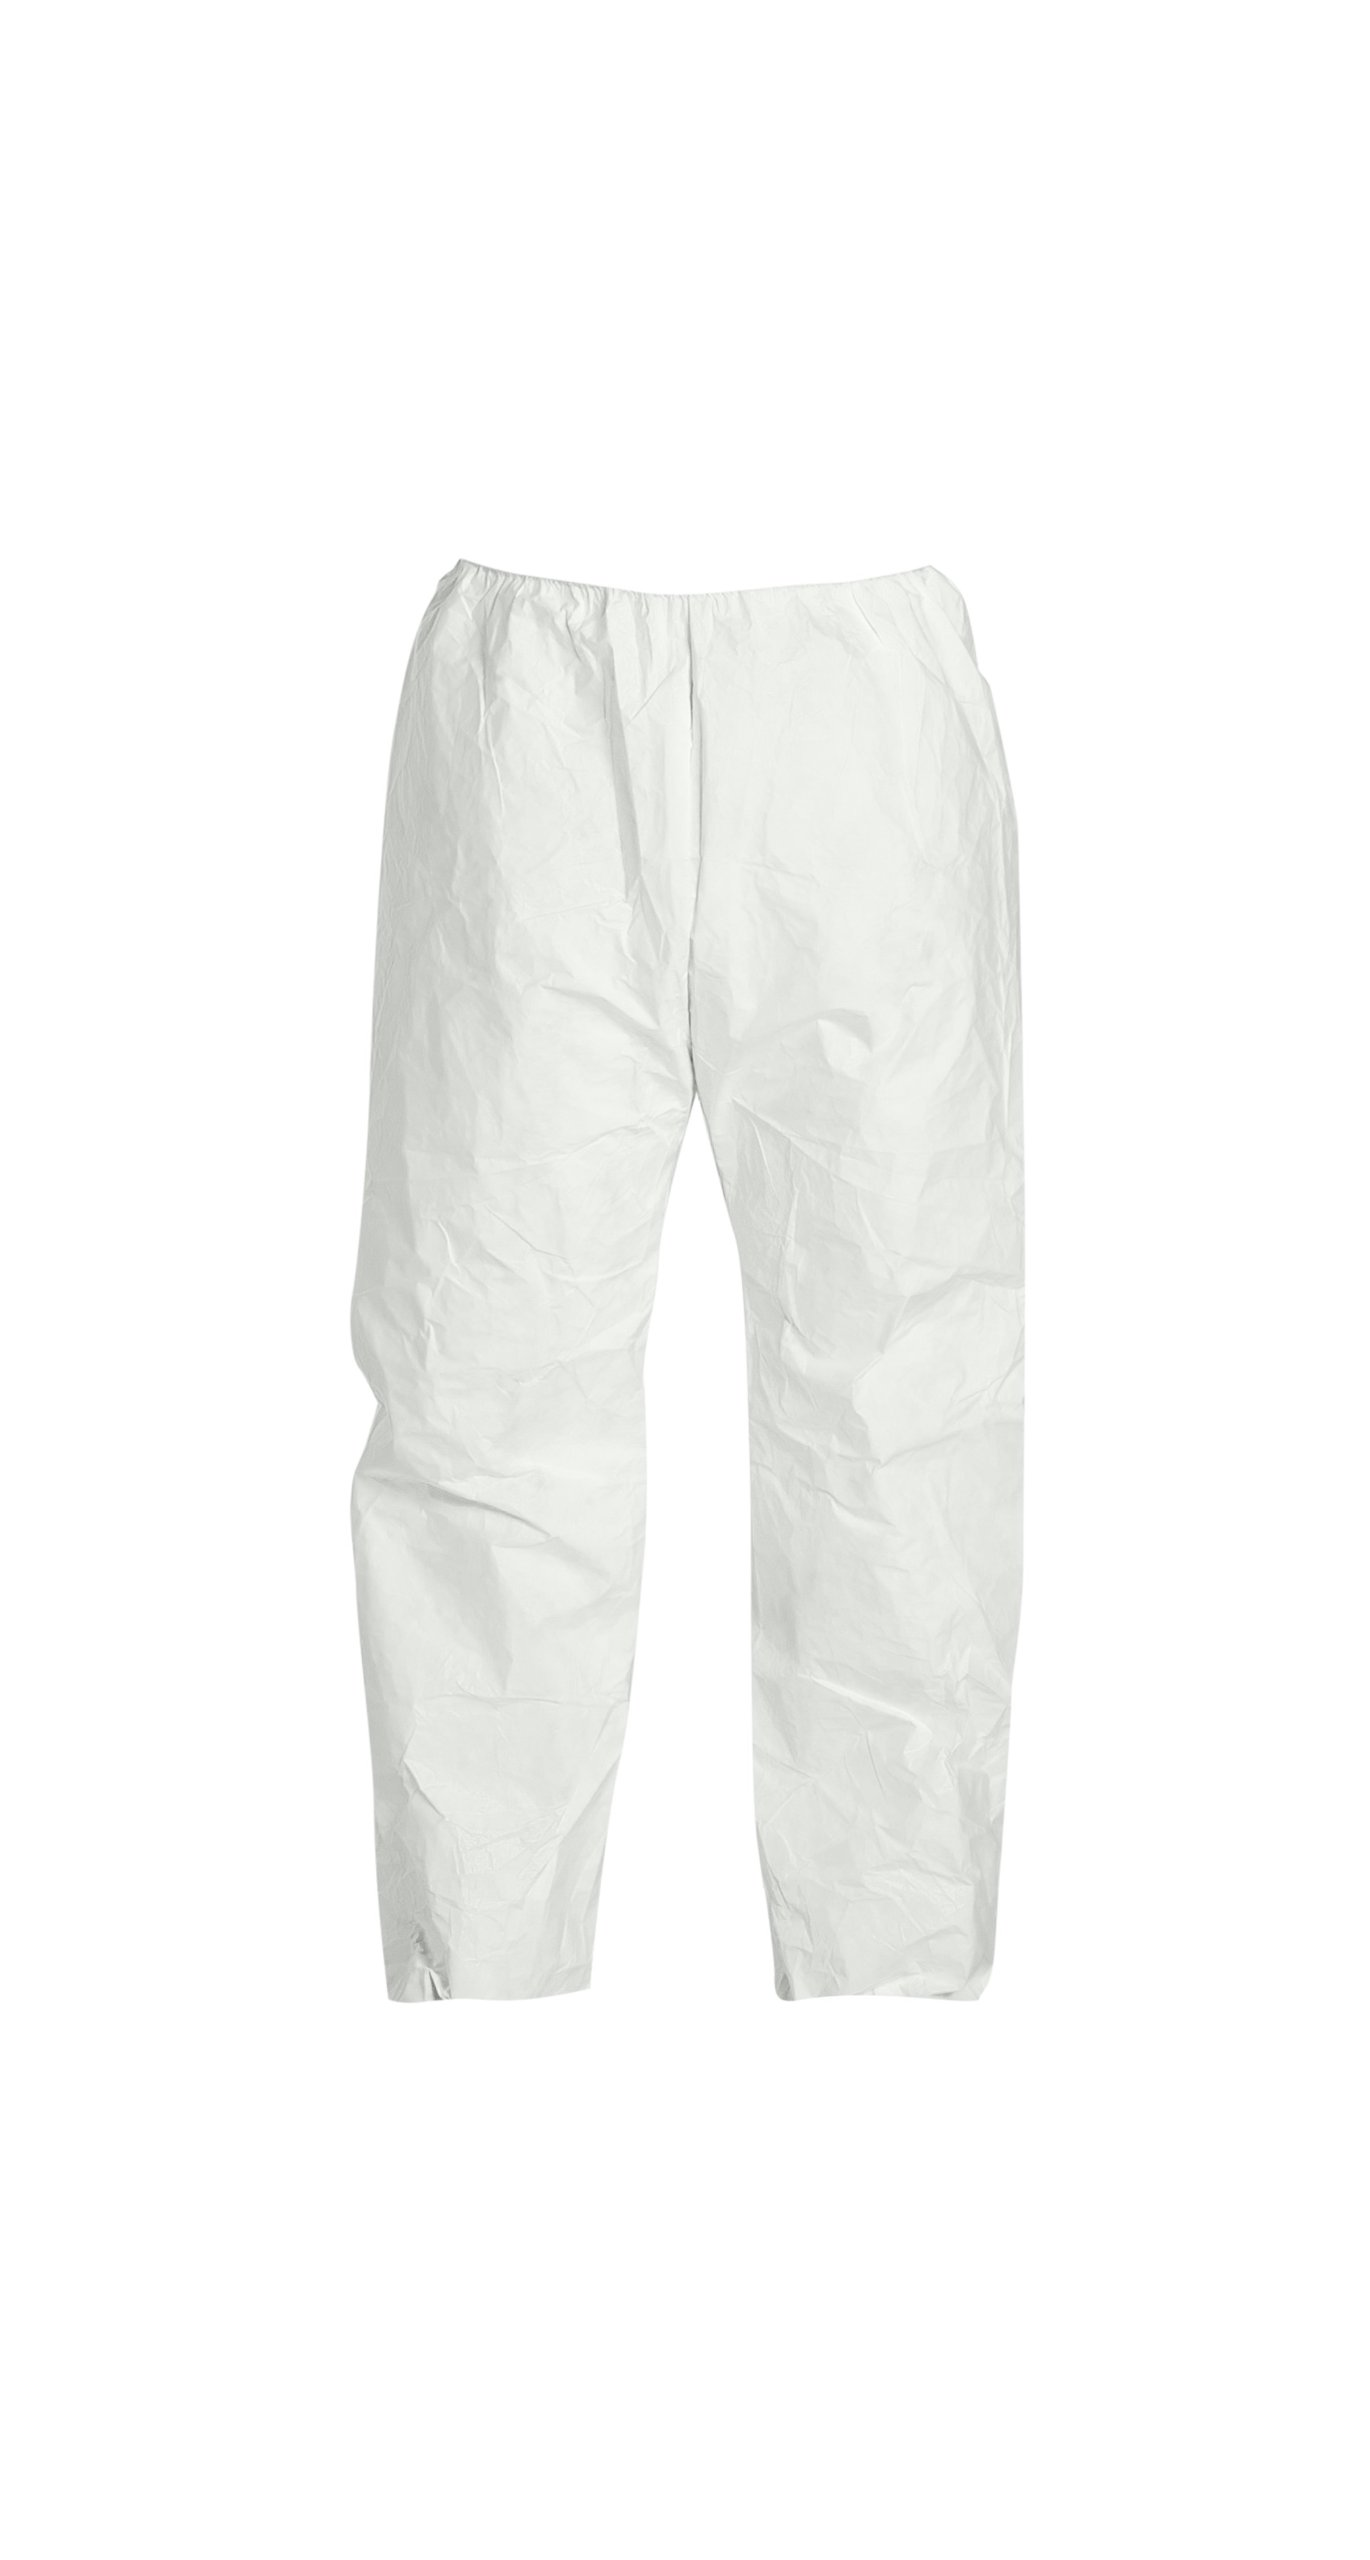 DuPont Tyvek 400 TY350S Disposable Pant with Elastic Waist, White, X-Large (Pack of 50)